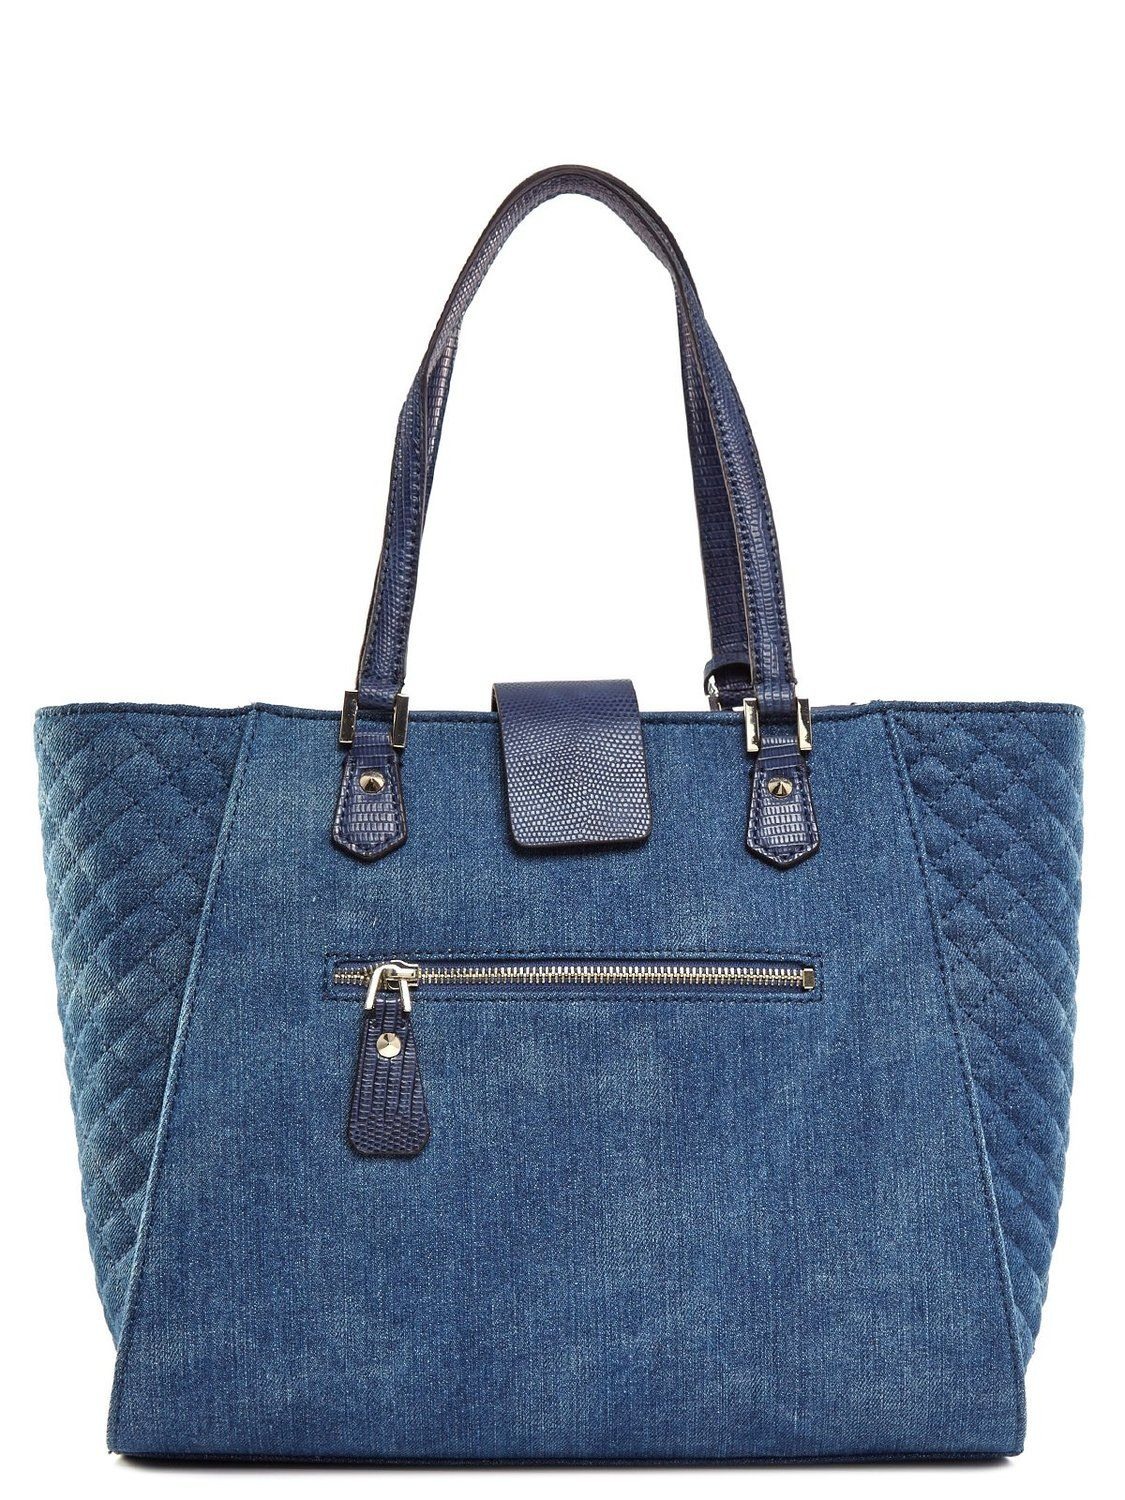 GUESS Womenu0026#39;s Kalen Carryall Denim Tote Handbags Amazon.com | bags | Pinterest | Tote handbags ...